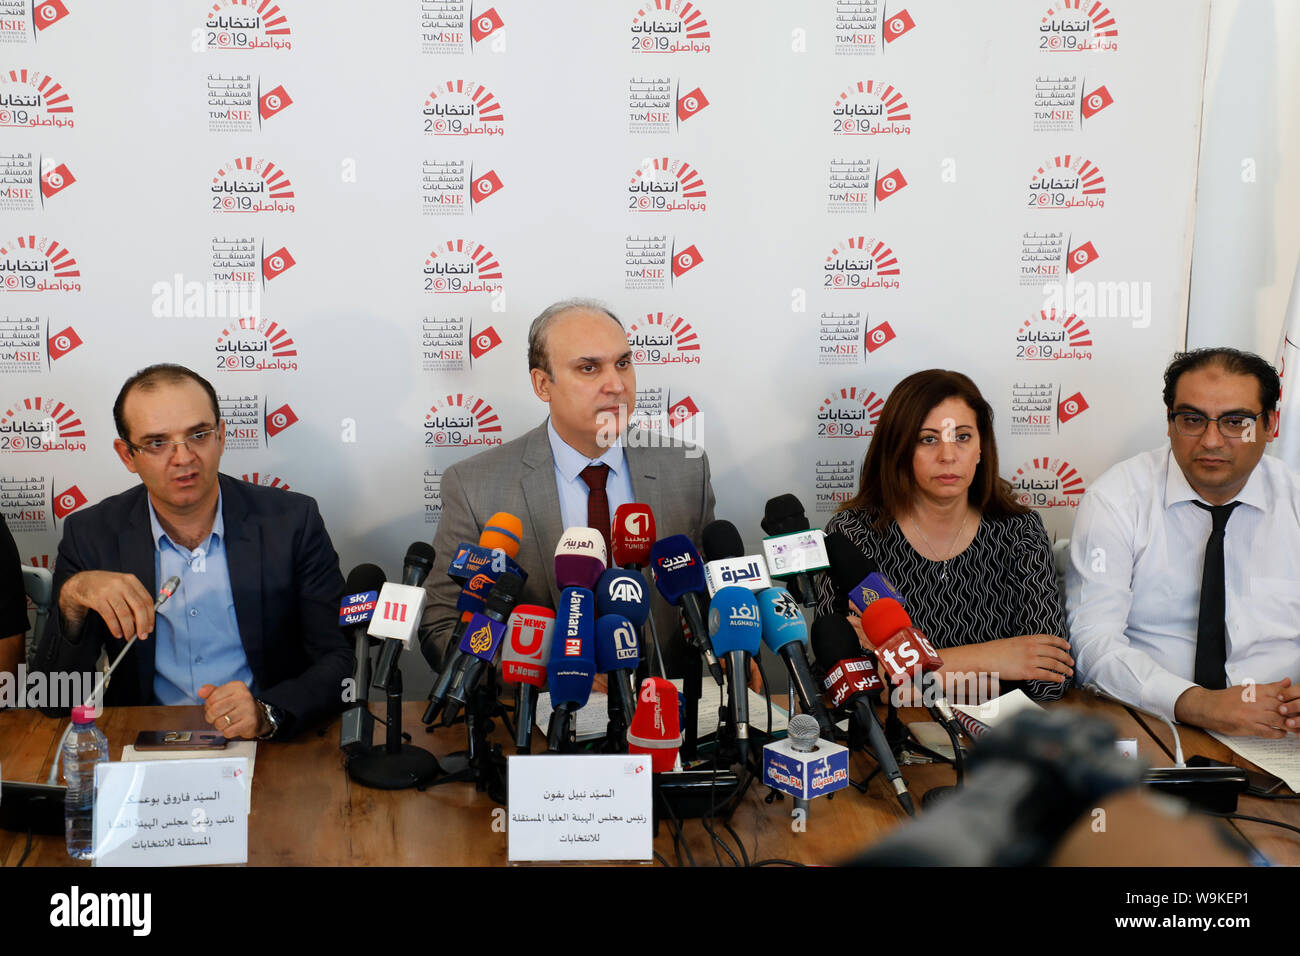 Tunis, Tunisia. 14th Aug, 2019. The head of Tunisia's Independent High Authority for elections (ISIE) Nabil Baffoun (C) speaks during a press conference to announce the approved candidacies for the upcoming presidential election. Twenty-six candidacies to the Tunisian presidential election of September 15 have been validated and 71 rejected. Credit: Khaled Nasraoui/dpa/Alamy Live News Stock Photo